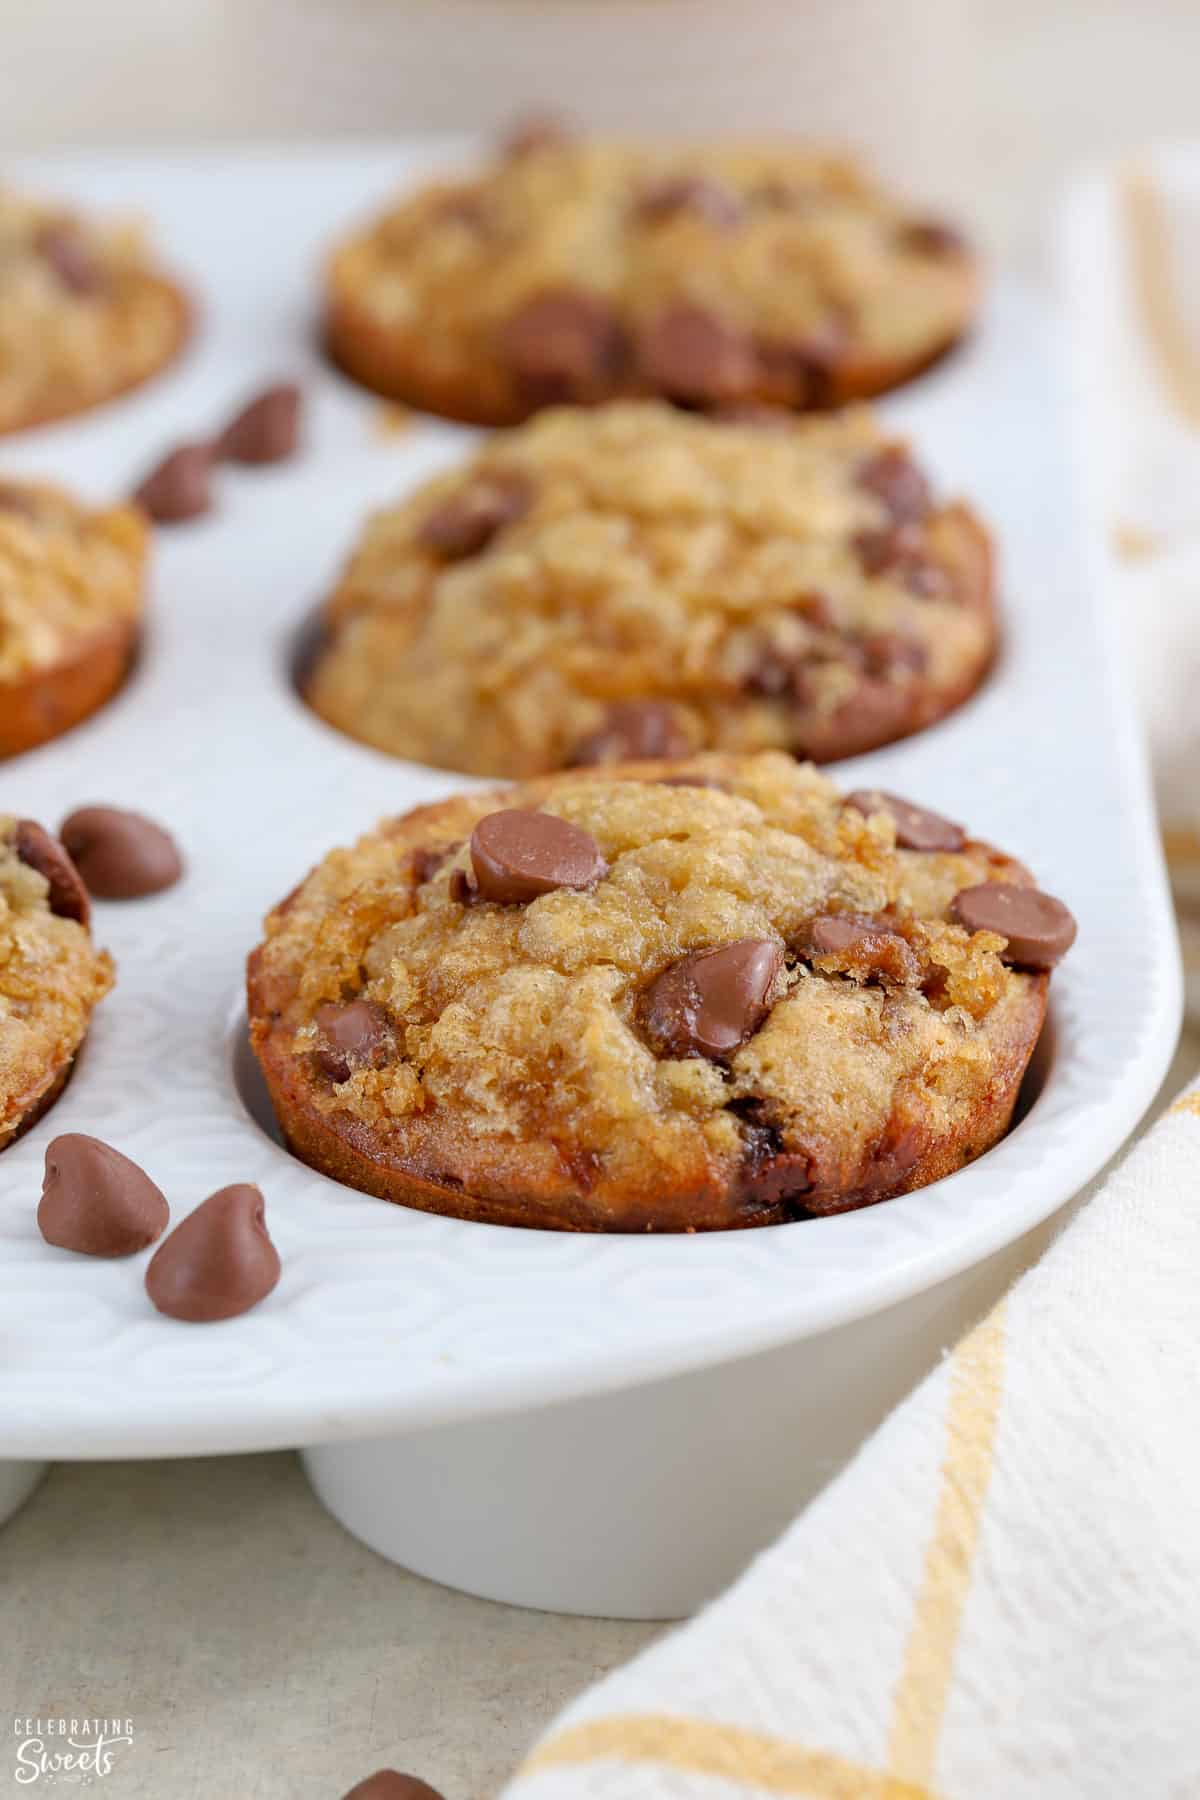 Banana Chocolate Chip Muffins in a white muffin pan